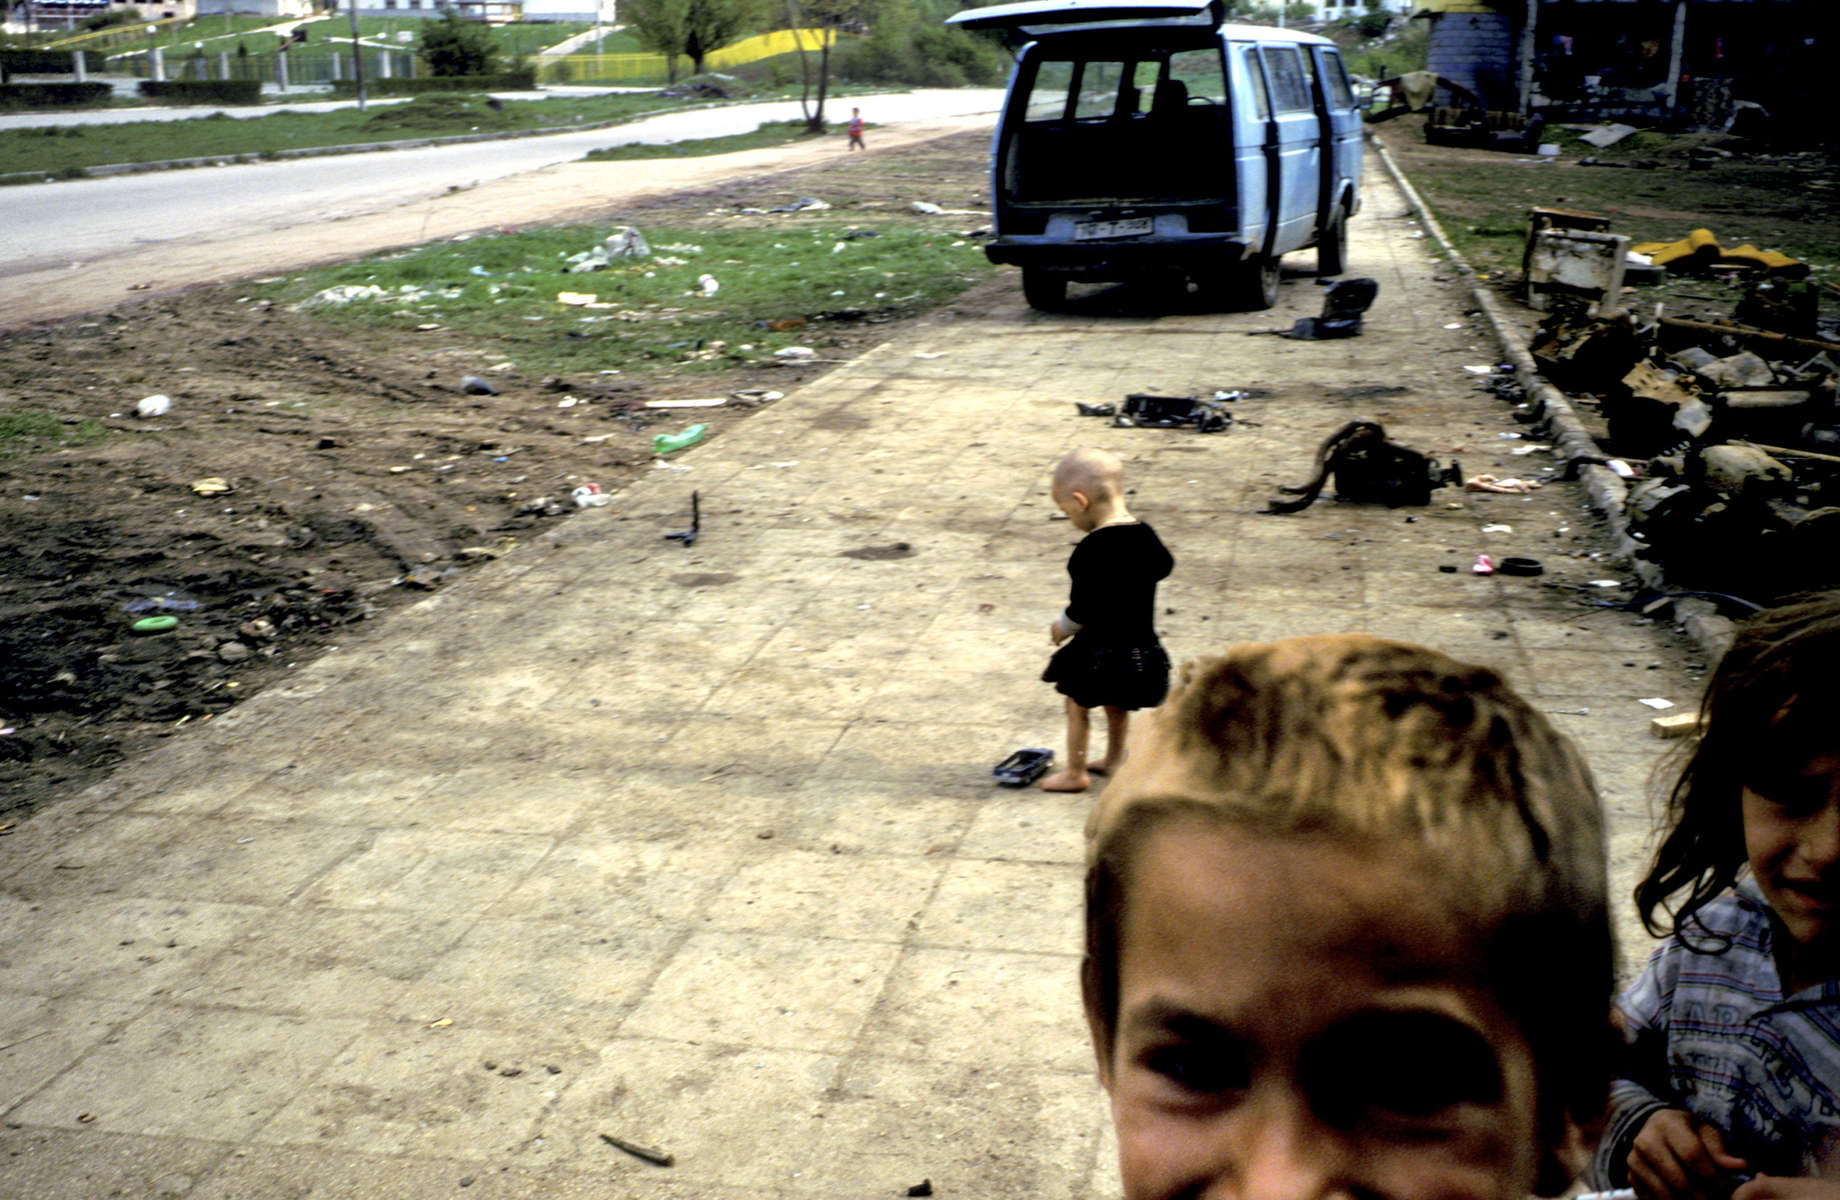 Roma children, squatting with their families in one of the many buildings riddled by mortars during the siege of Sarajevo, play on a junk-littered sidewalk.